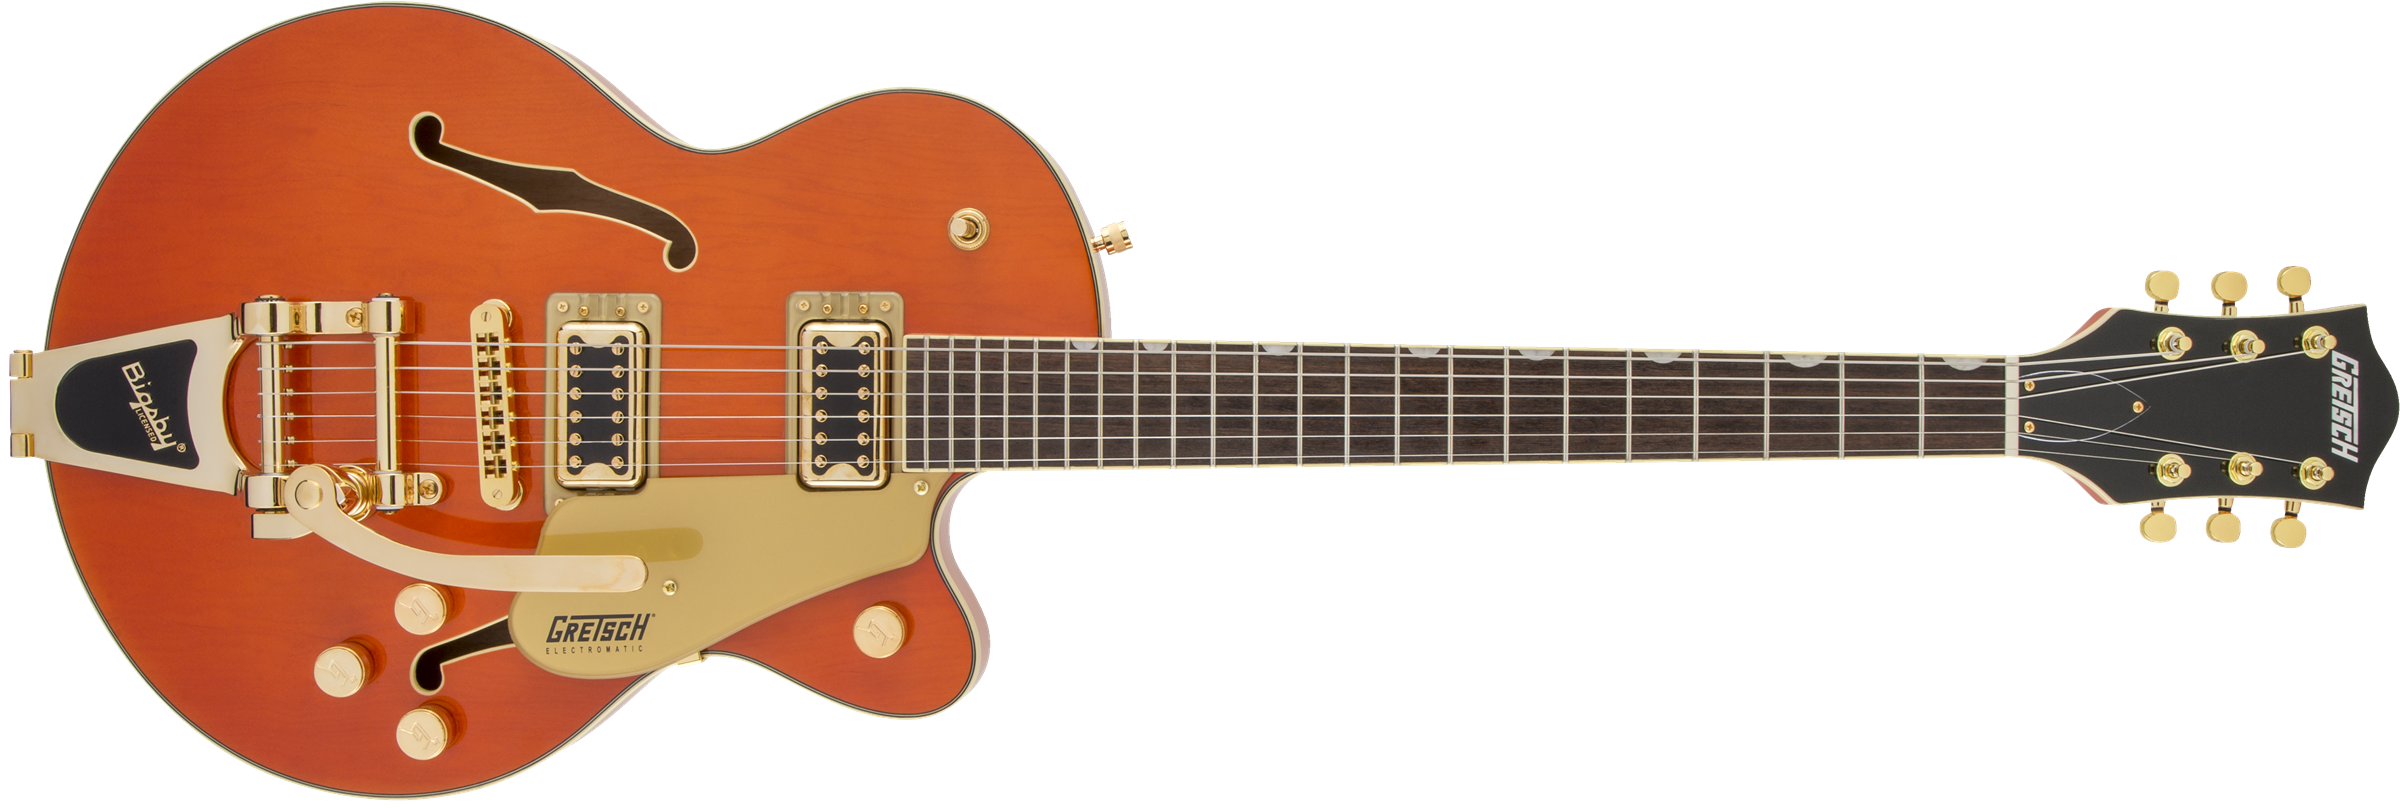 Gretsch G5655TG Electromatic - Orange Stain